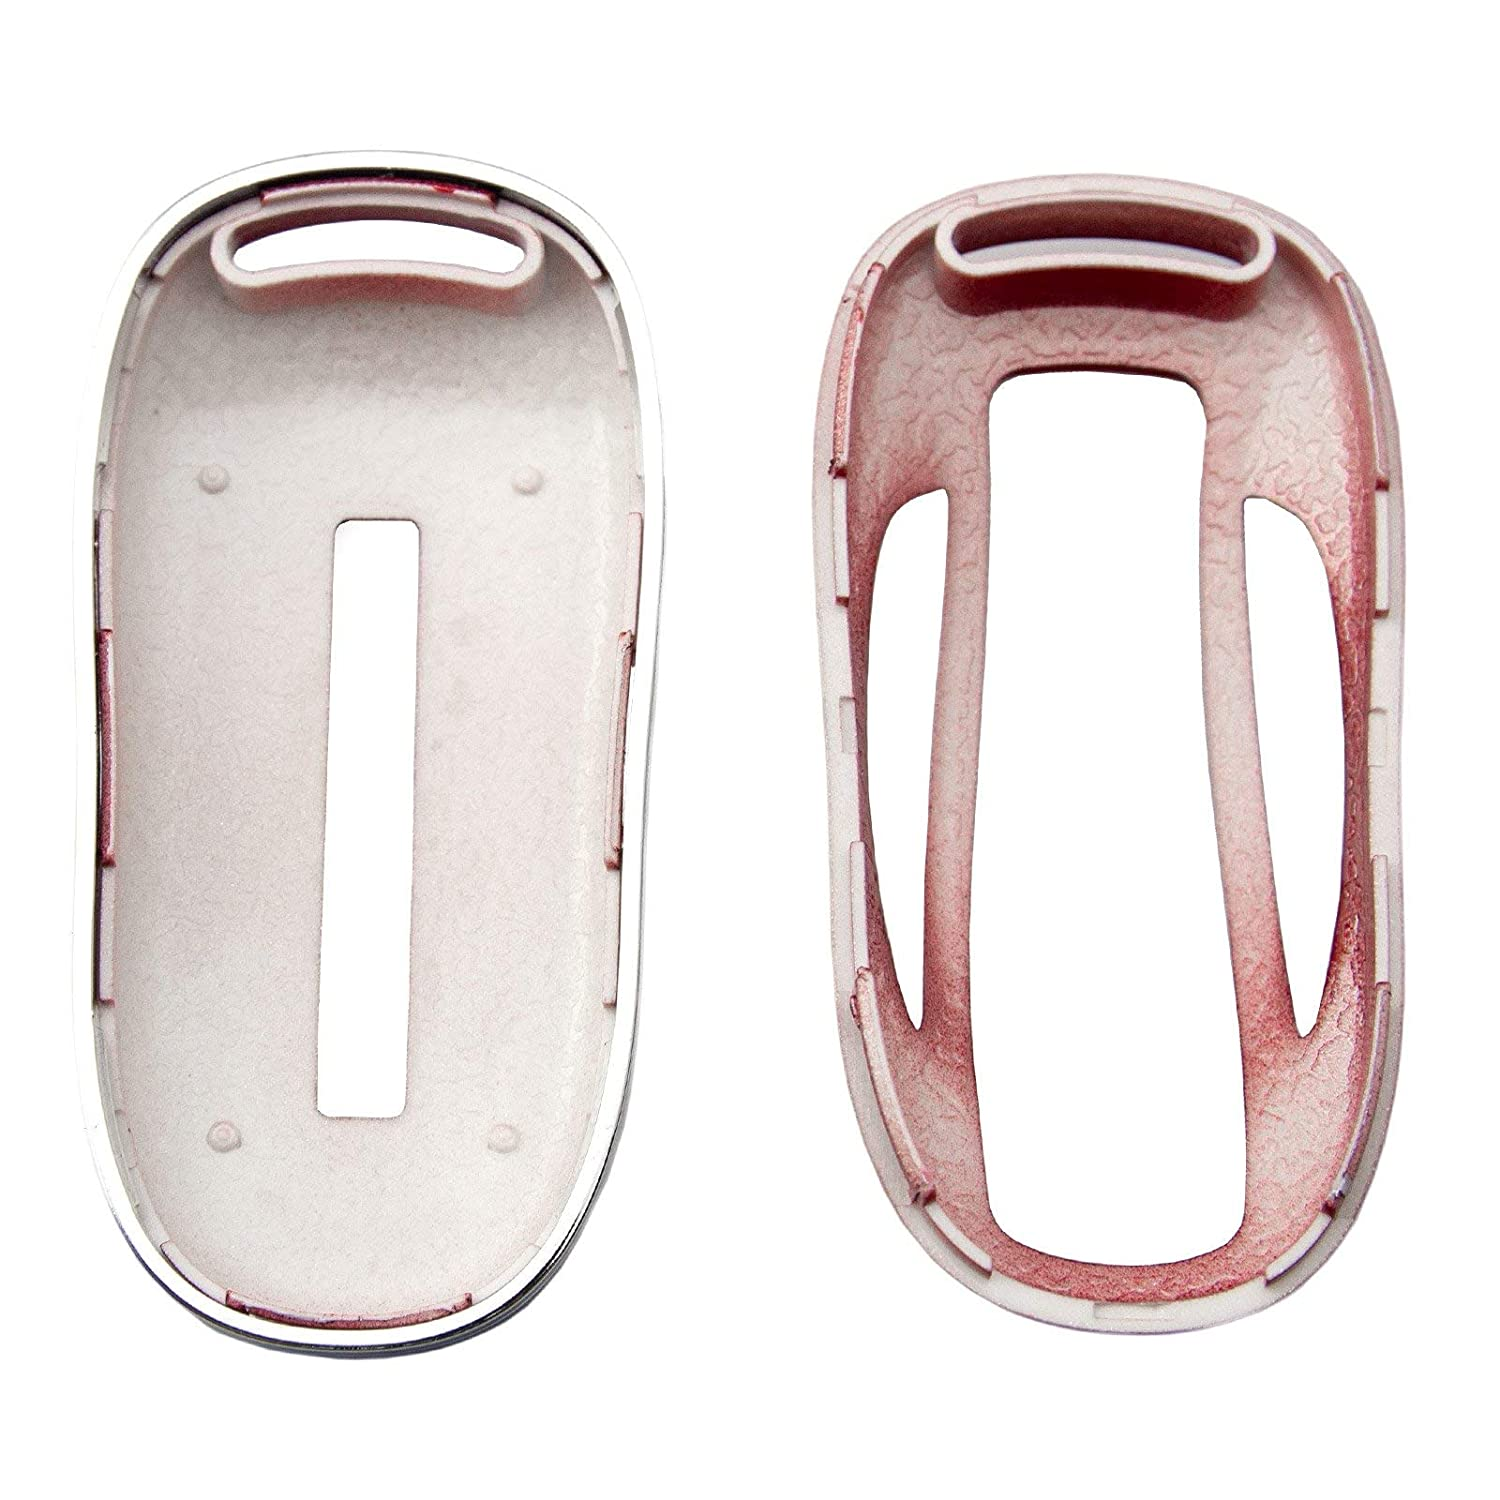 Xotic Tech Glossy Red Key FOB Cover Hard Shell Case for Tesla Model X Keyless Remote Xotic Tech Direct